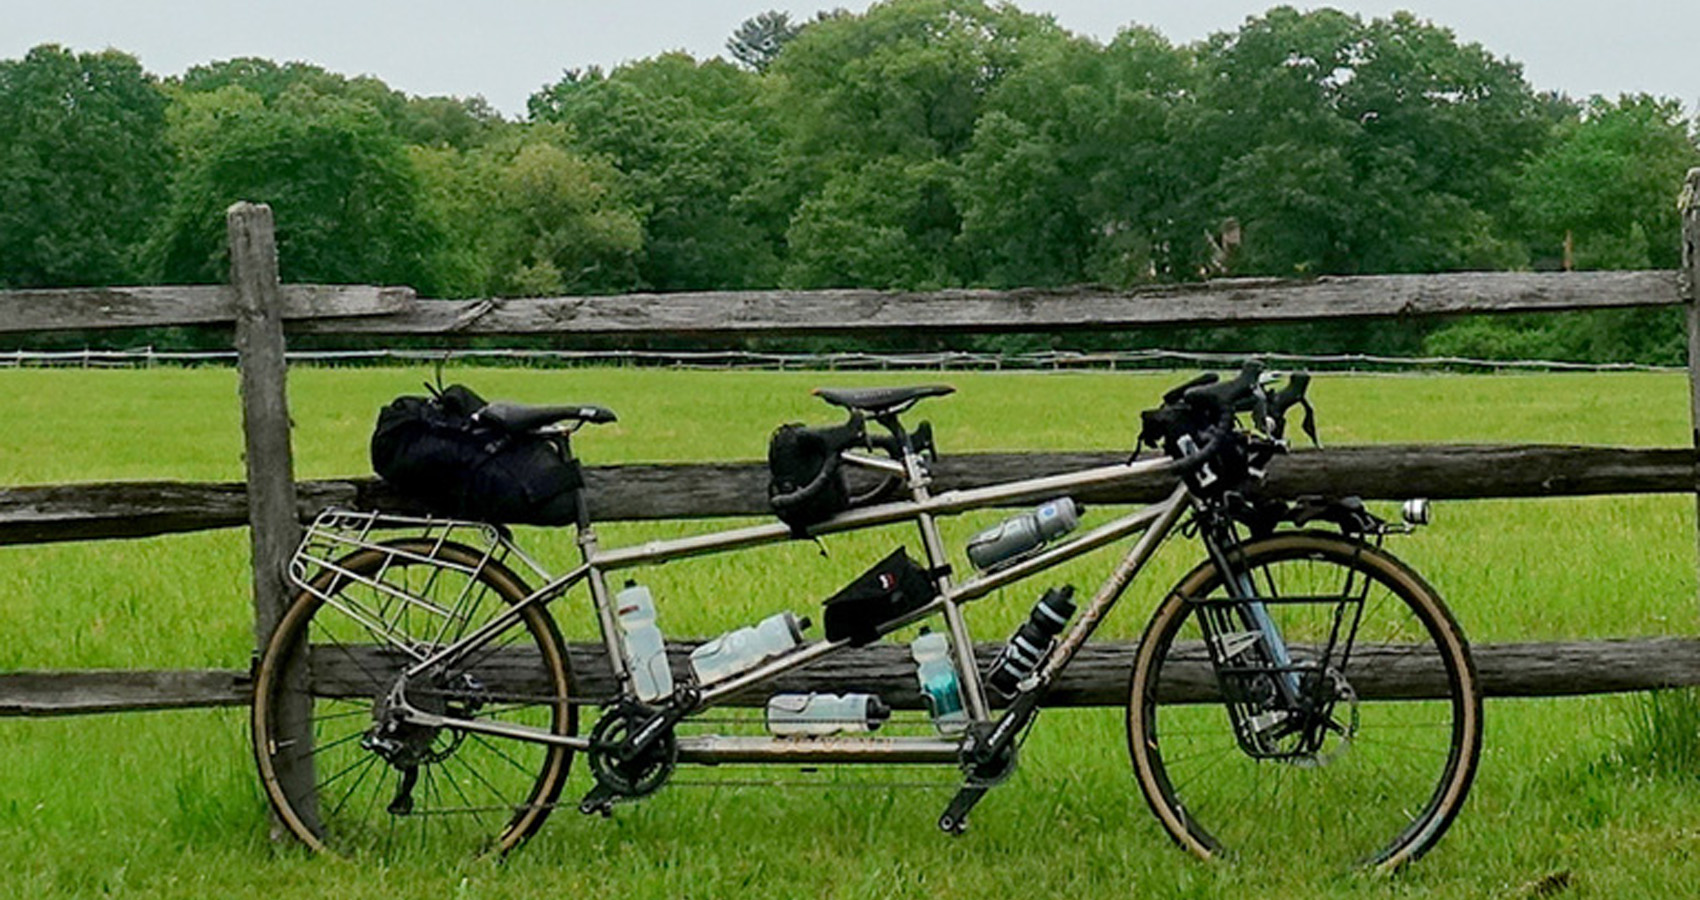 a titanium tandem bicycle loaded for a day-long tour rests against a rustic farm fence